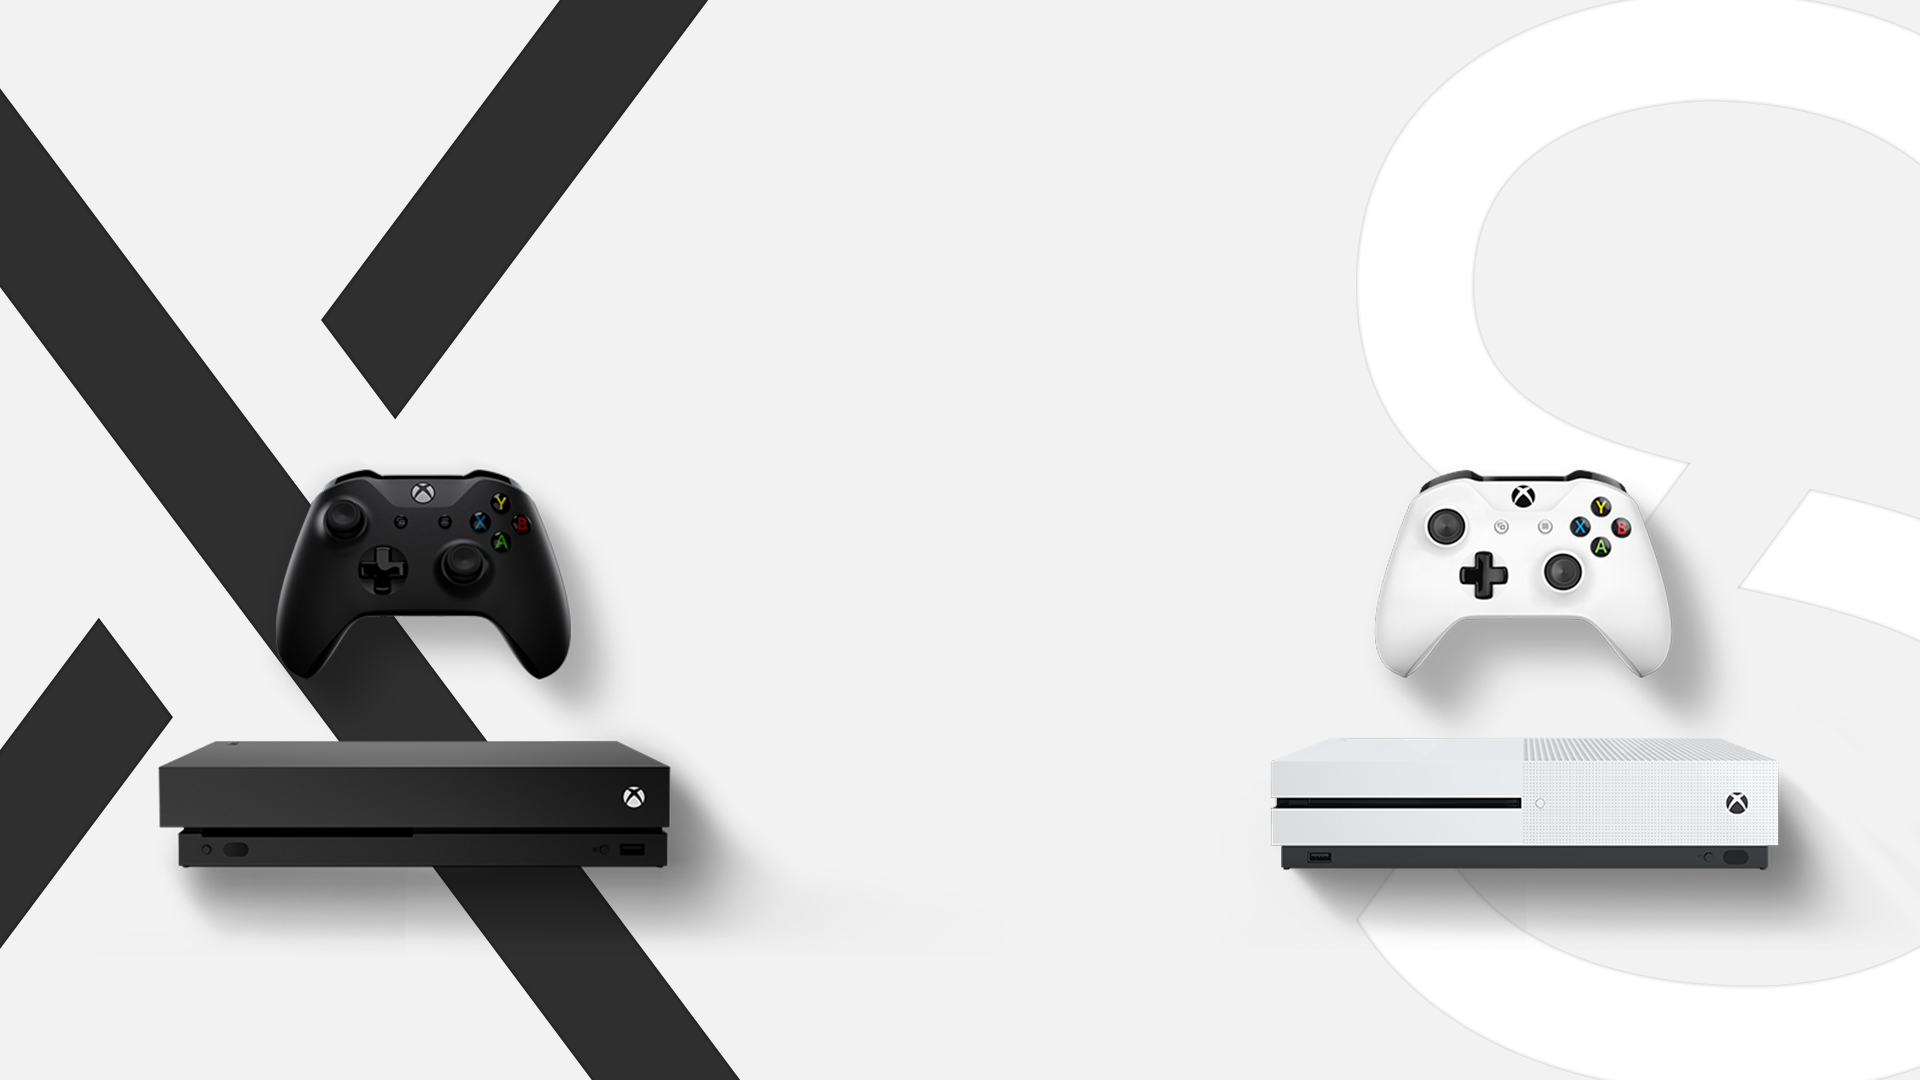 hight resolution of xbox one x and xbox one s consoles